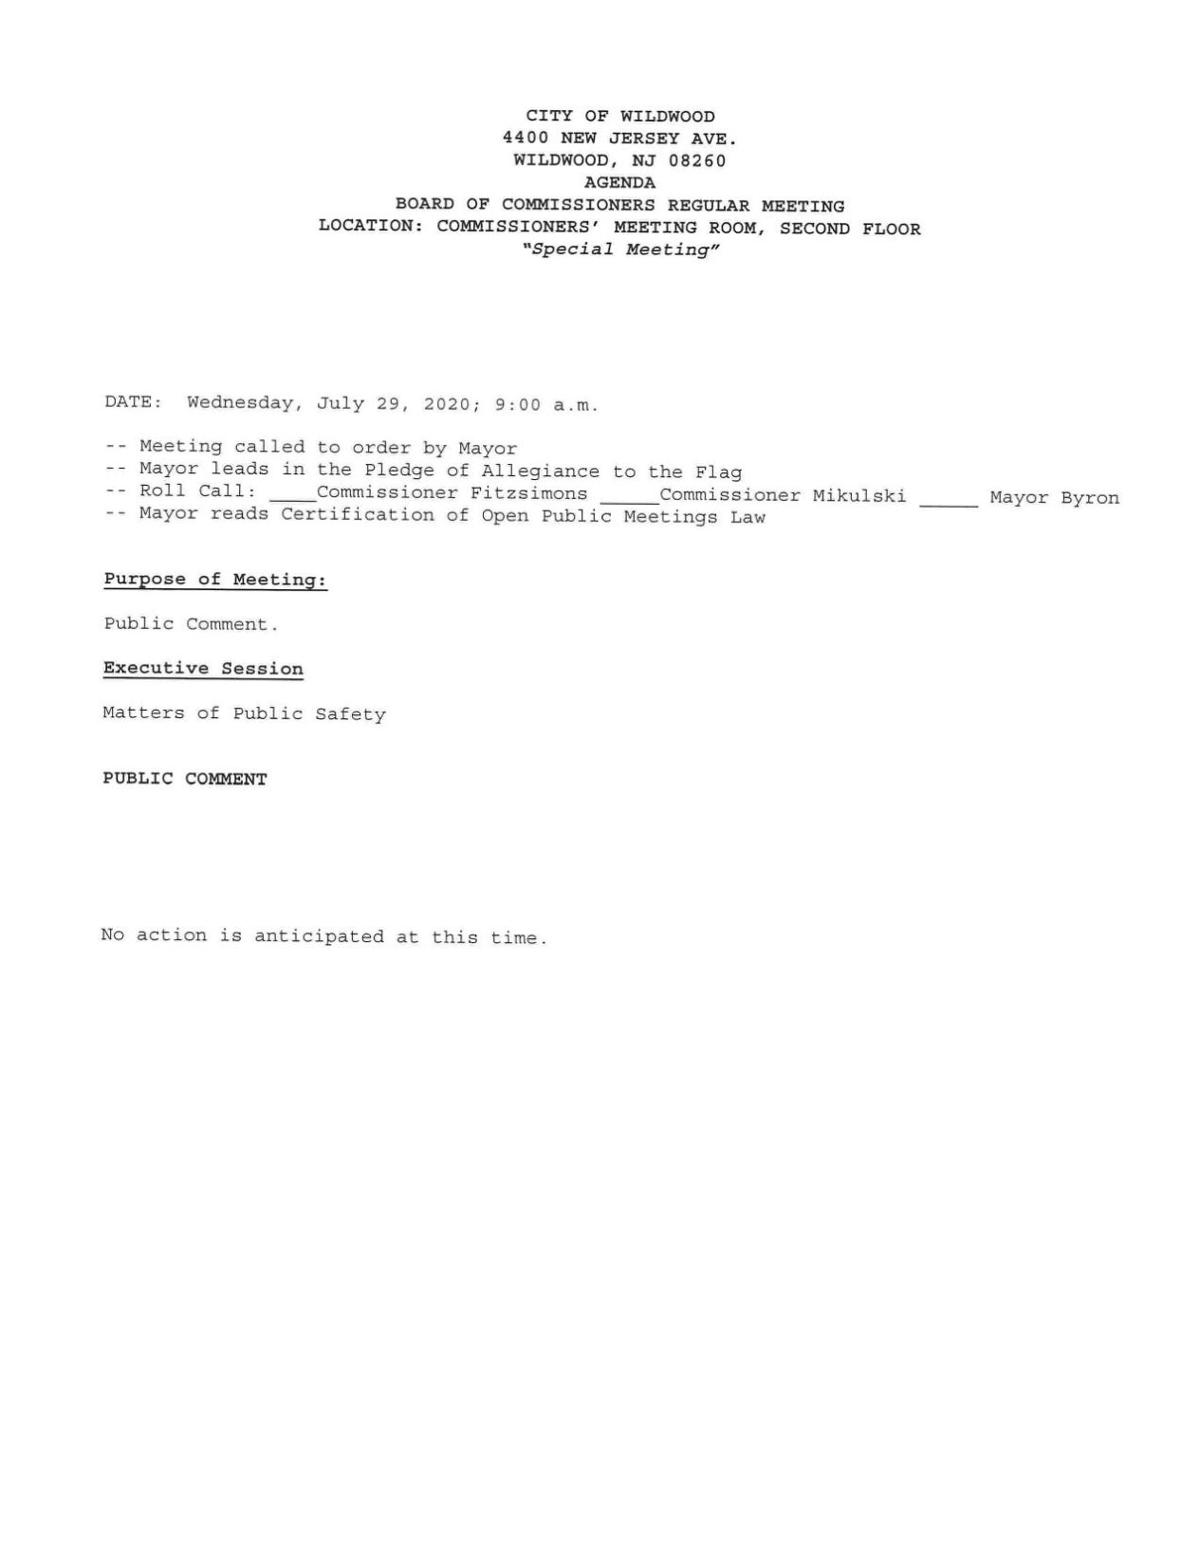 Wildwood City Commissioners Meeting Agenda July 29, 2020